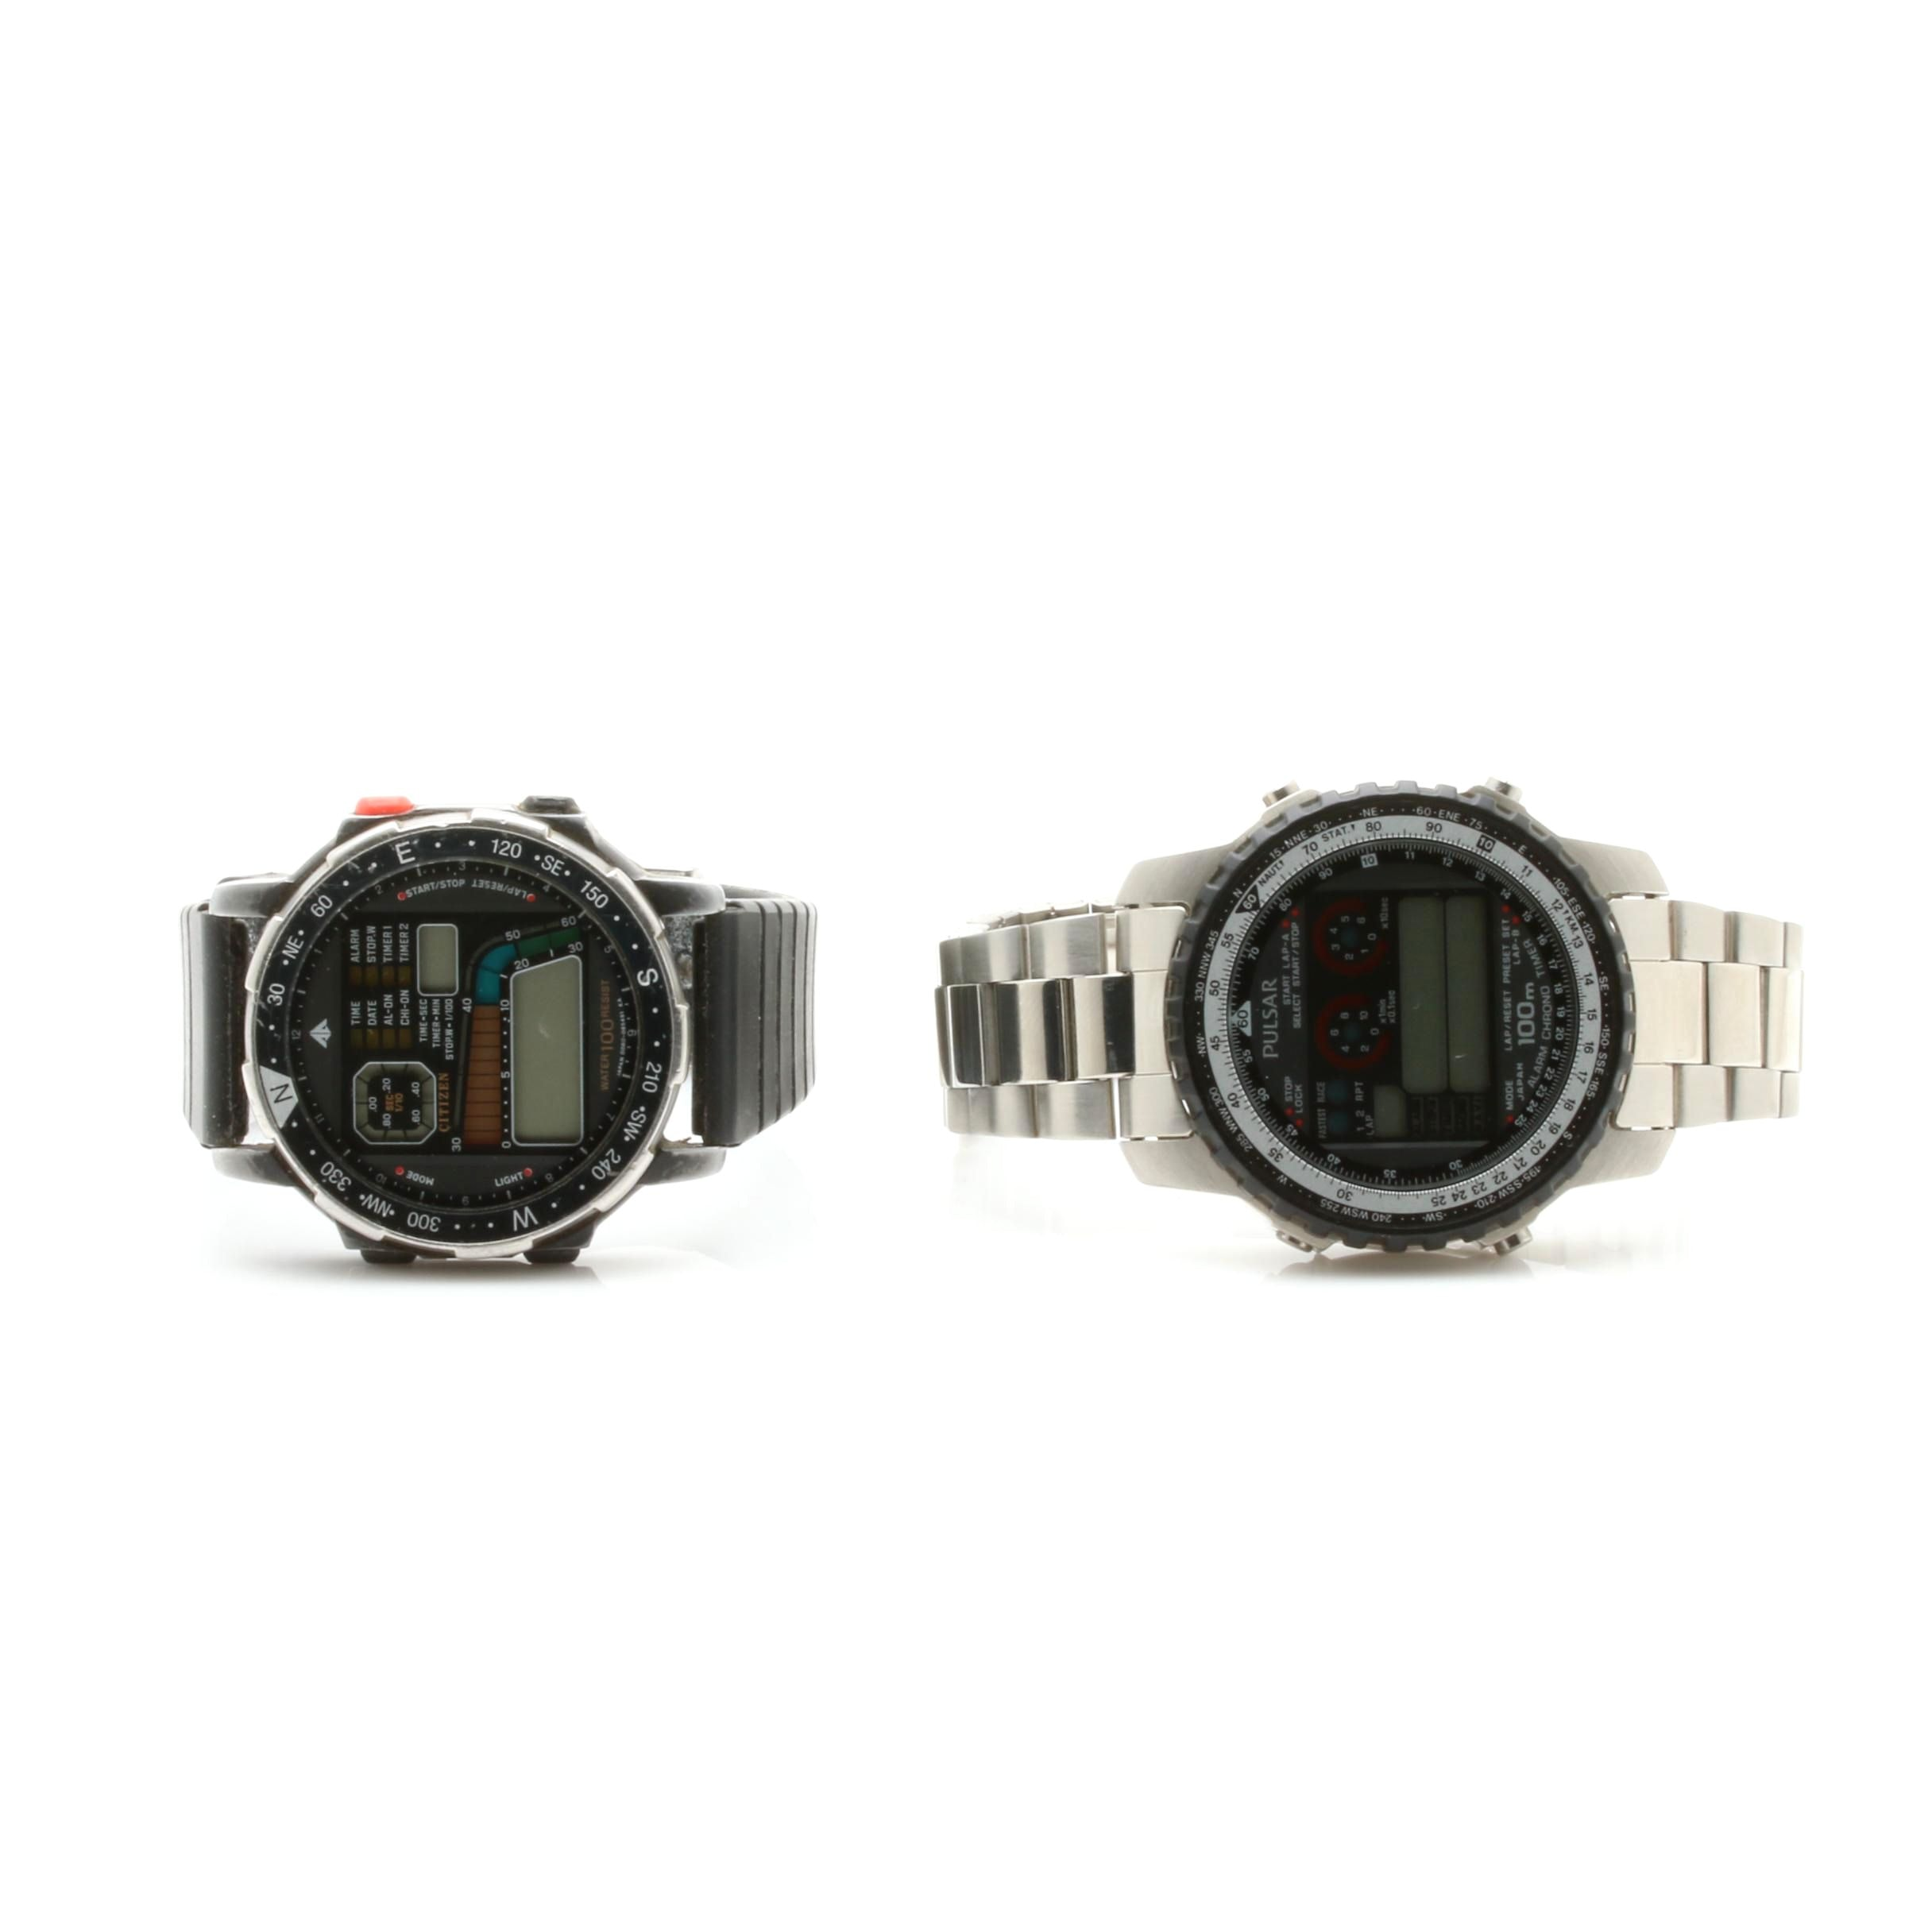 Pular and Citizen Silver Tone Digital Display Watches